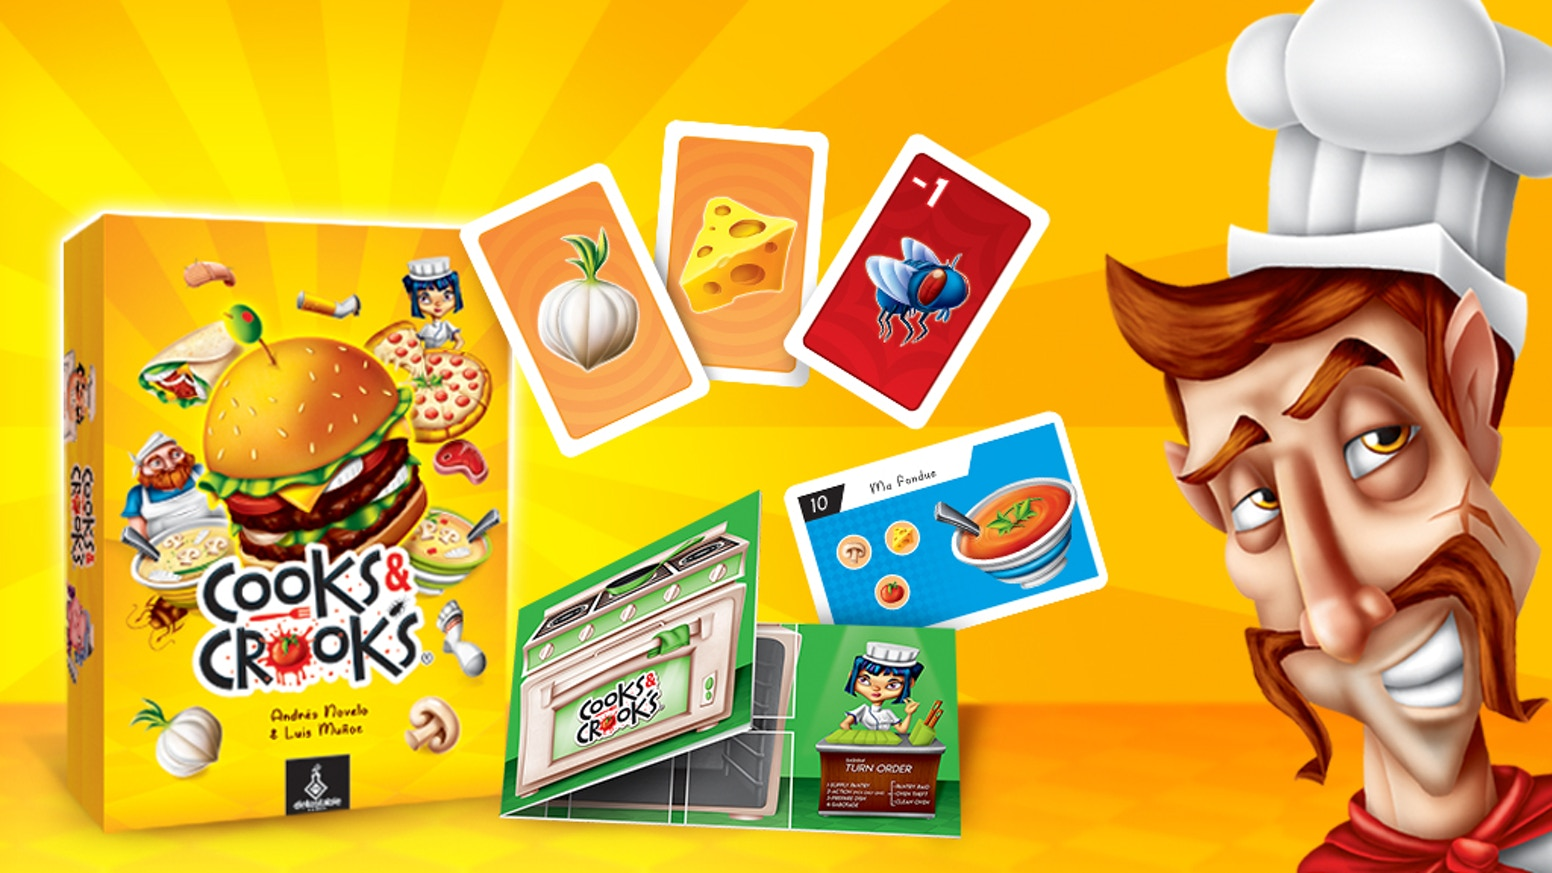 Put the proverbial fly in other player's soup! Discover who is the most crooked cook in this family game.